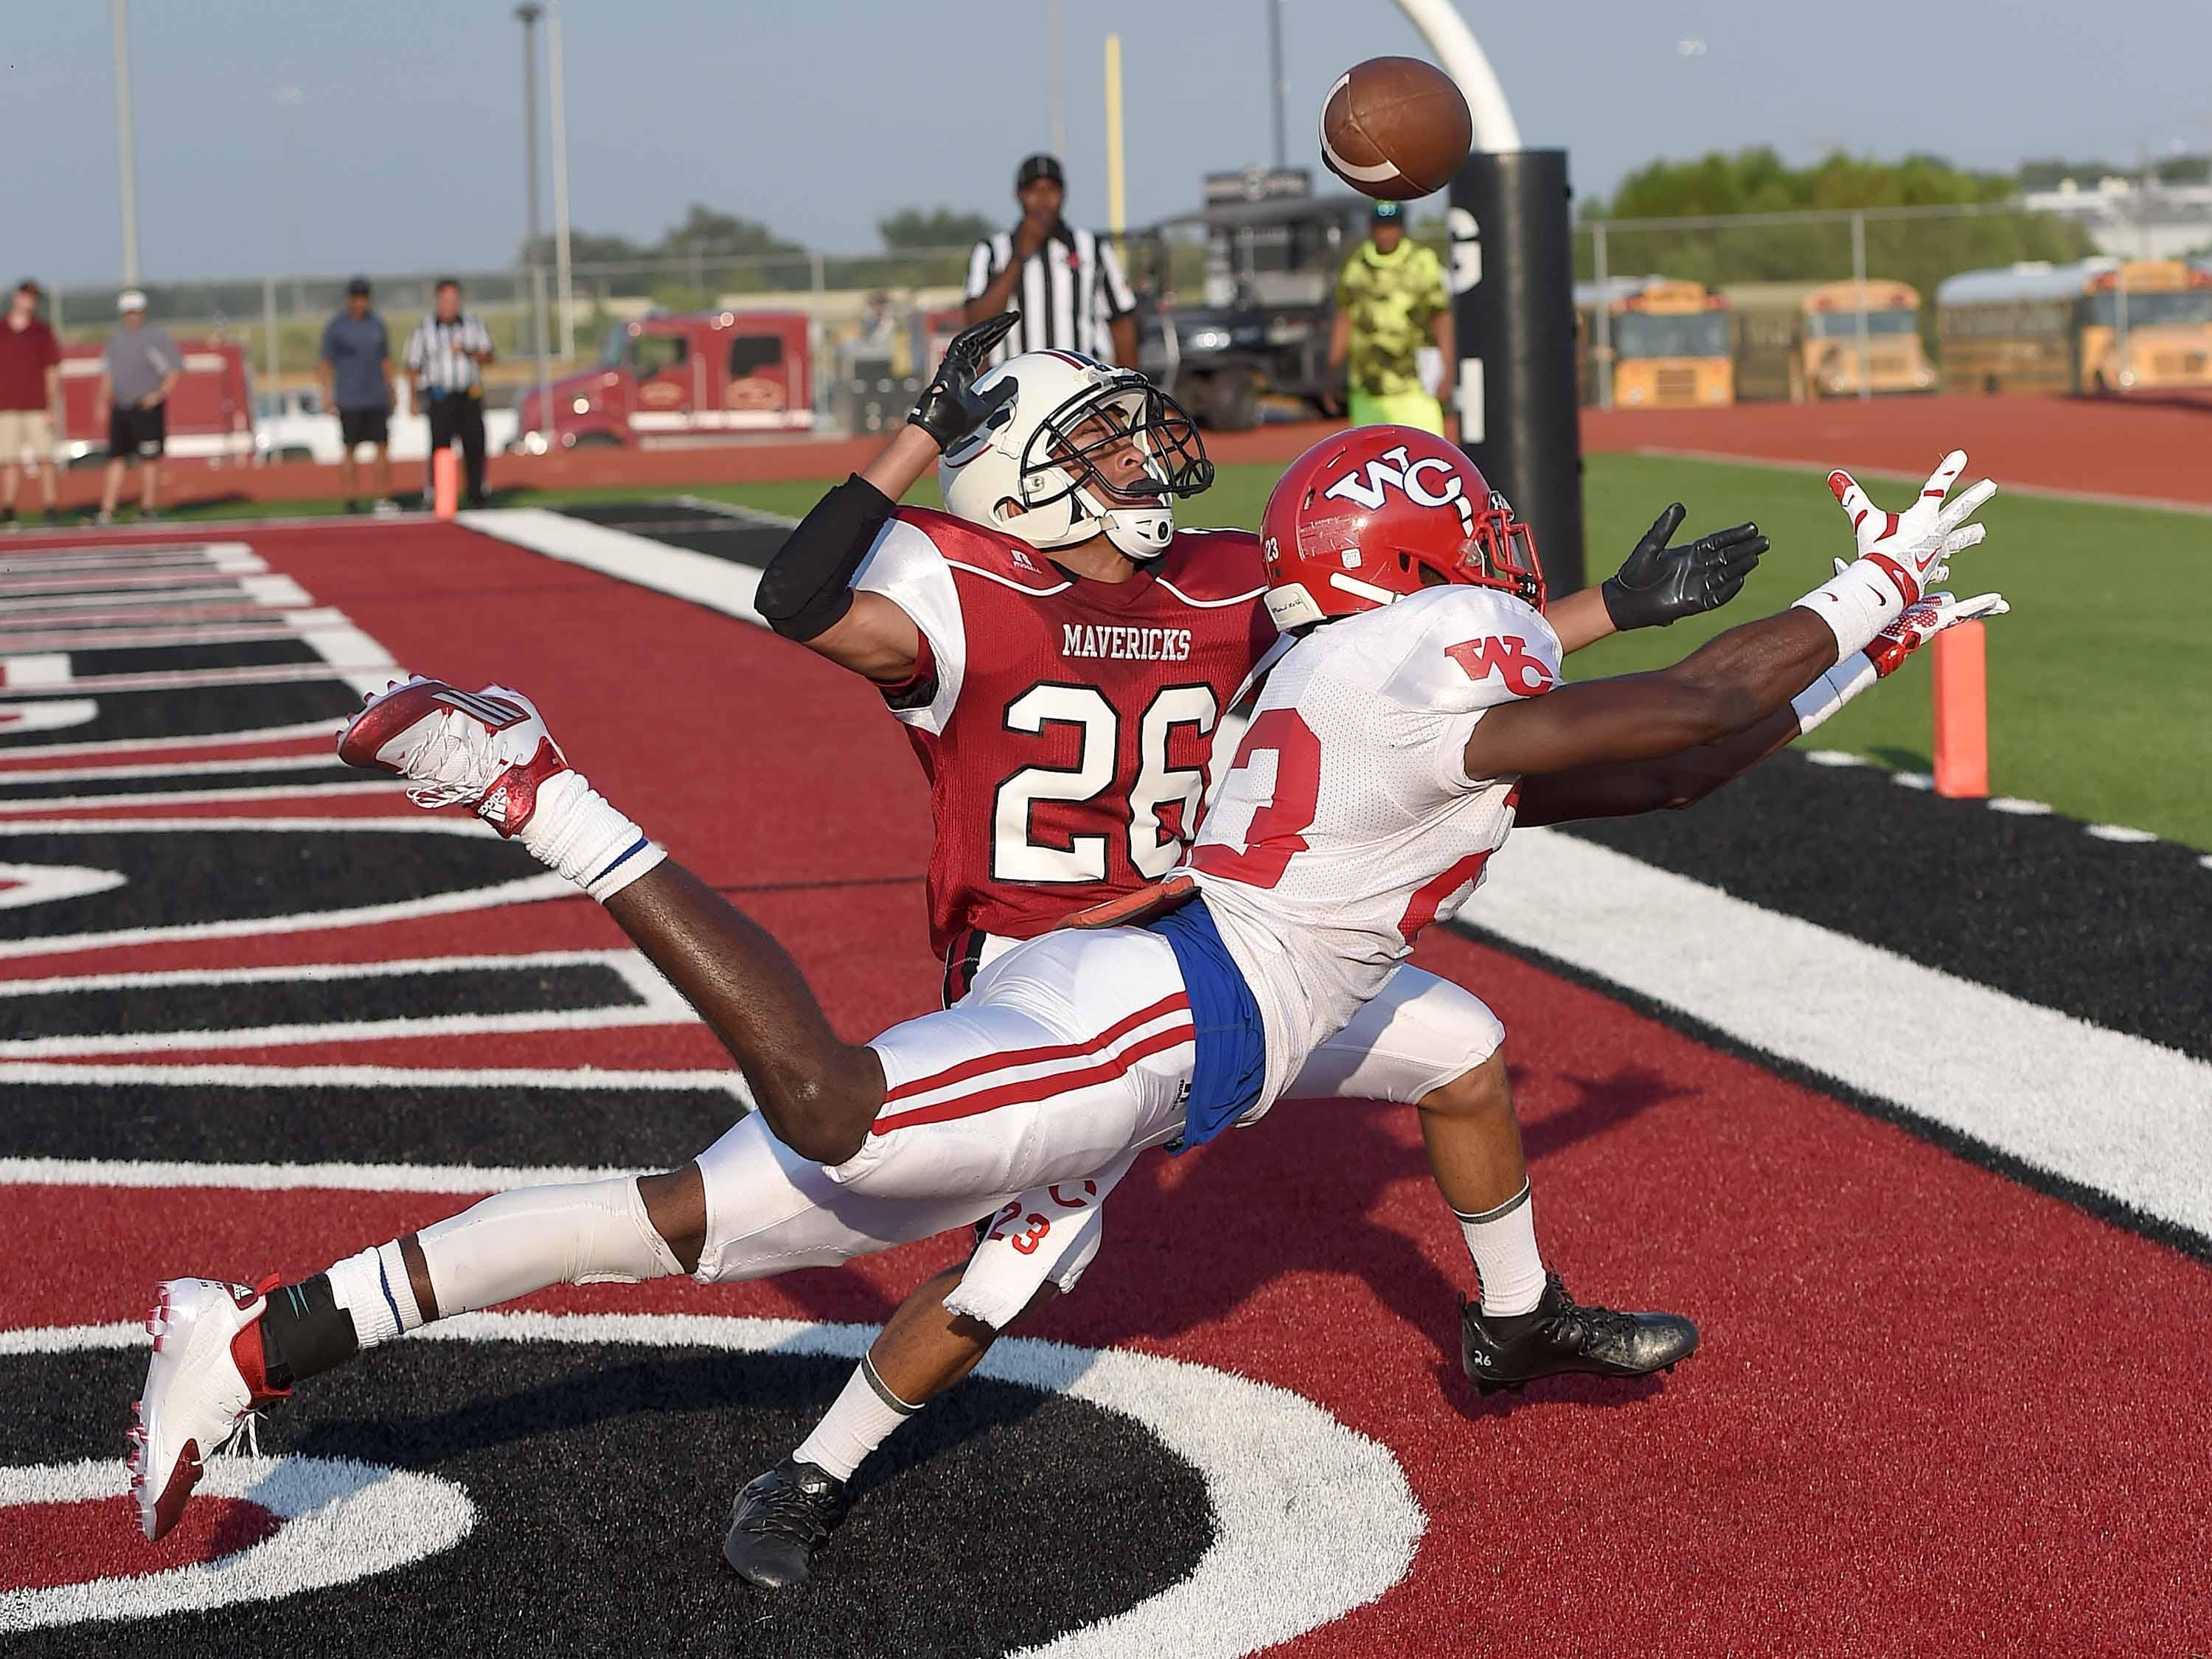 Warren Central receiver Derrick Dixon dives for a pass in the end zone against Germantown's Noah Greenwood on Friday.